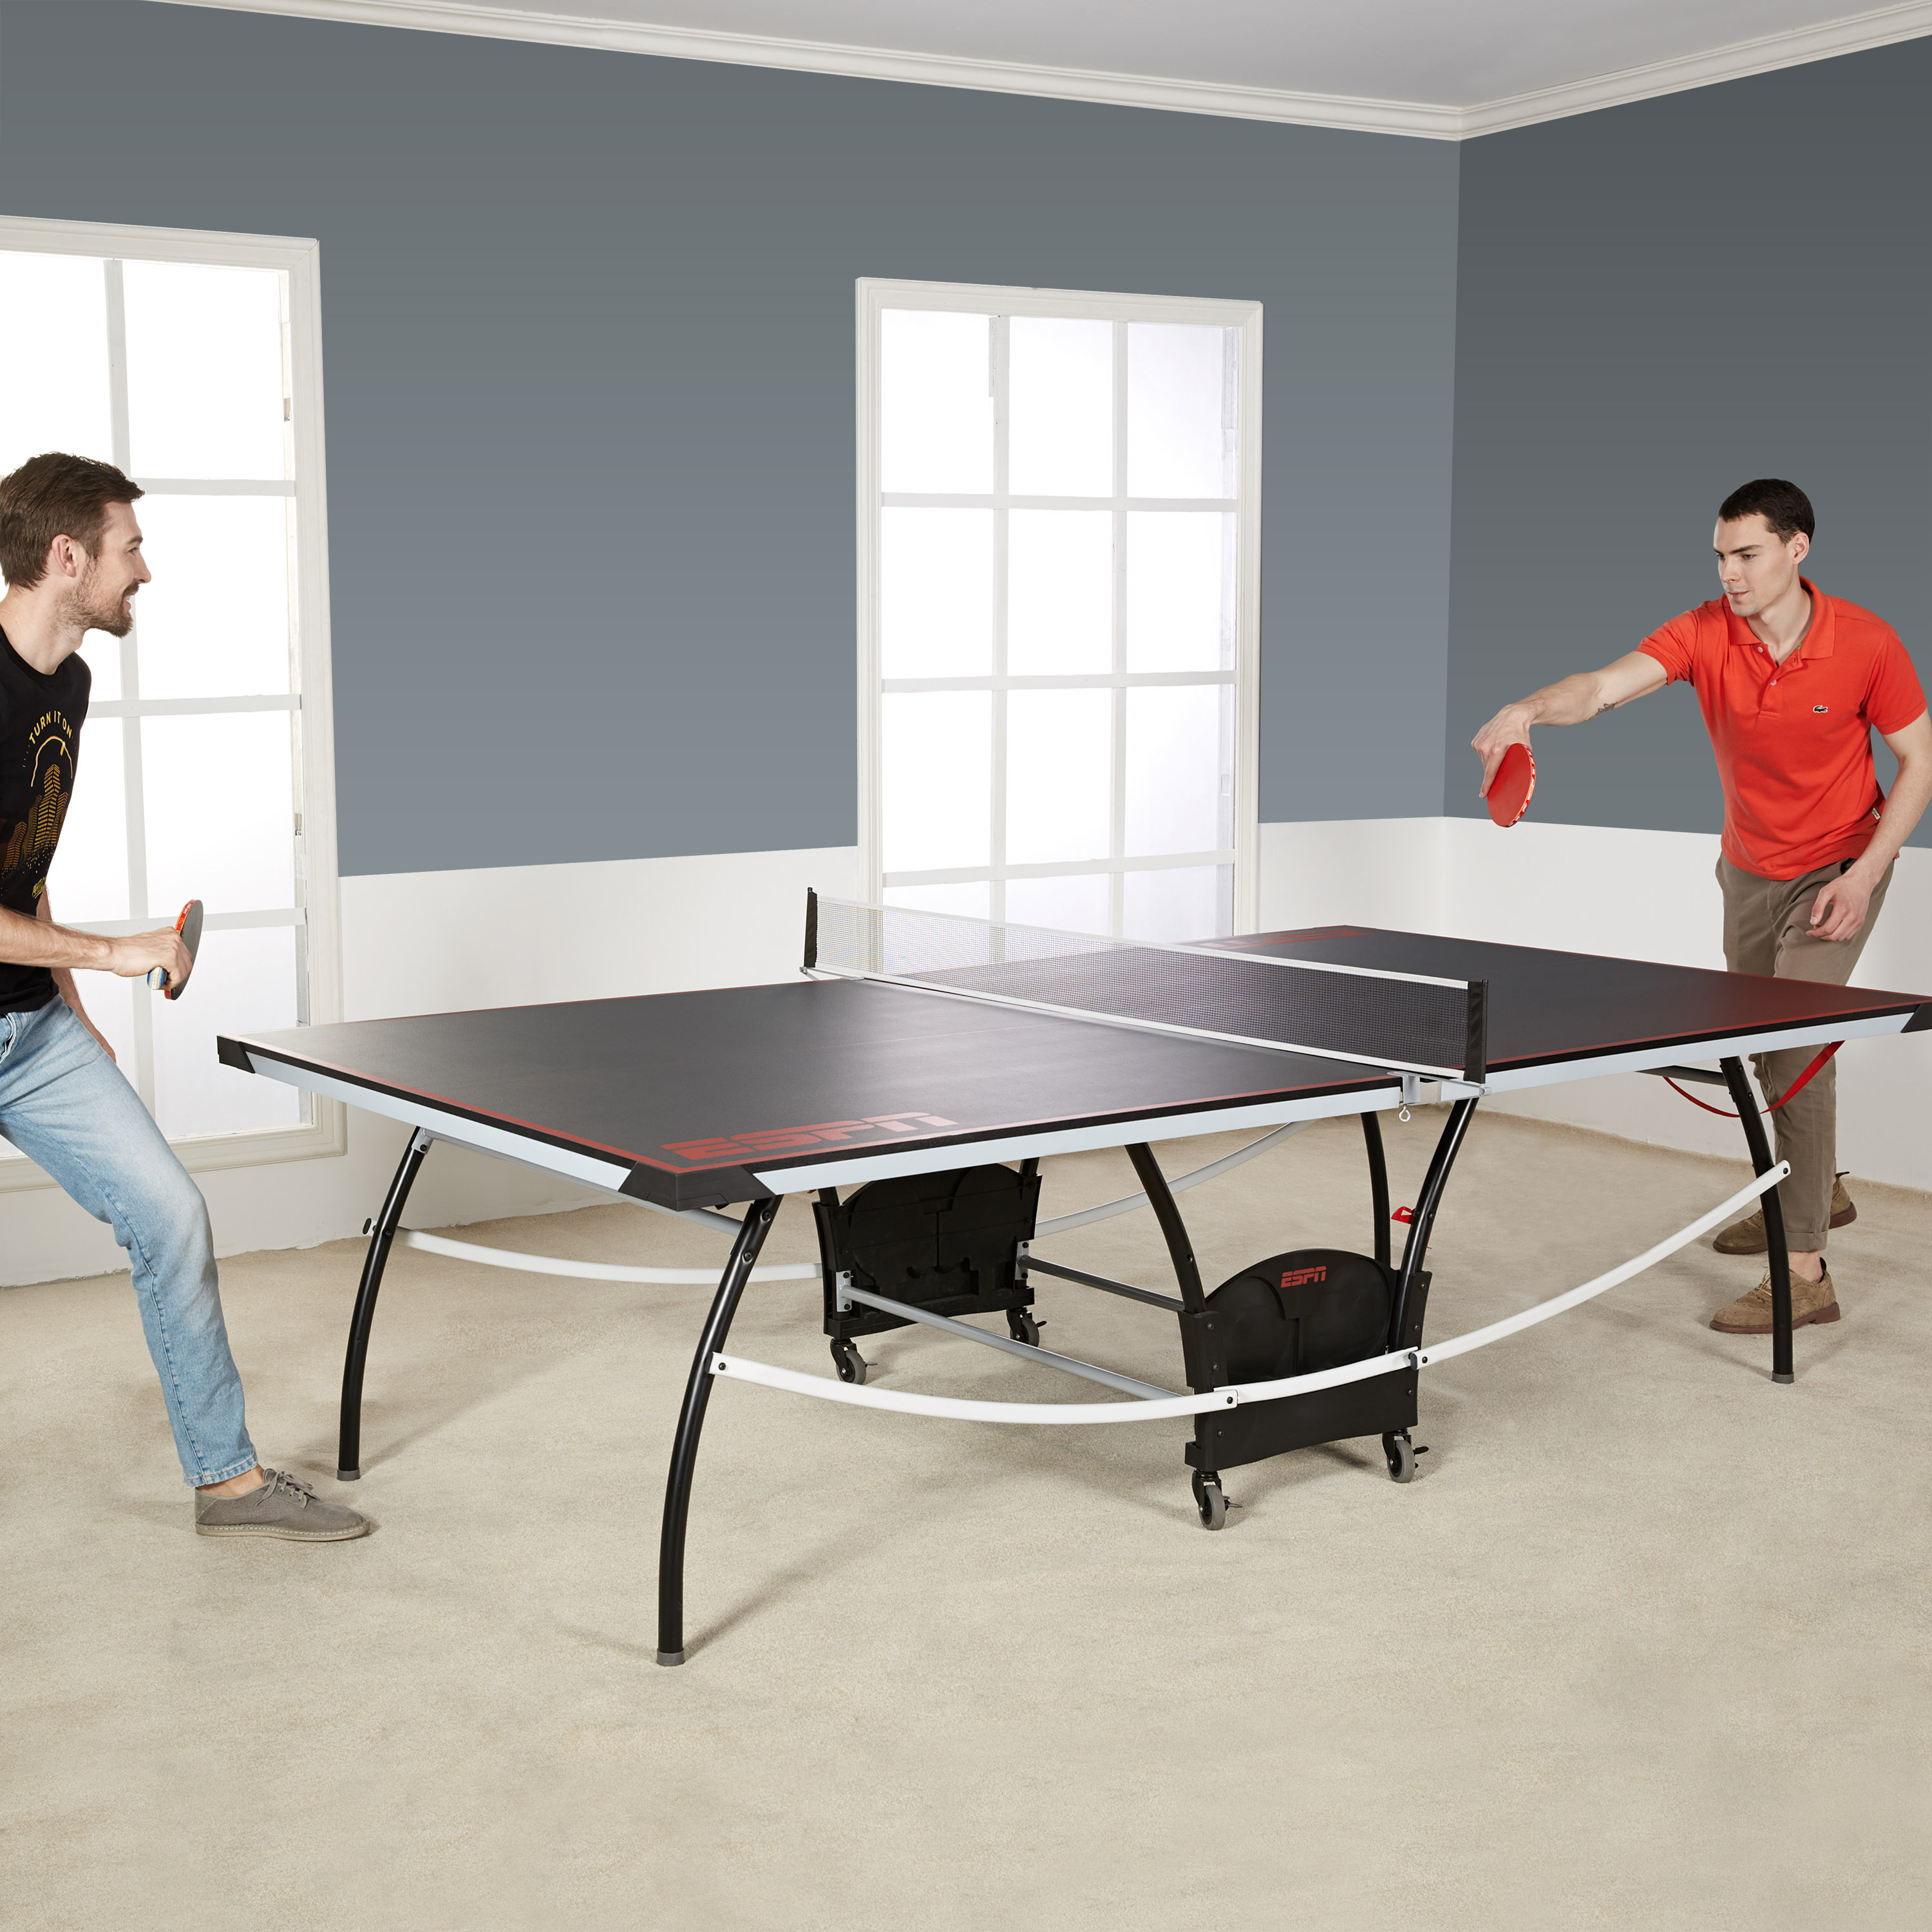 ESPN Official Size Table Tennis Table With Built In Accessory Storage Space    Walmart.com